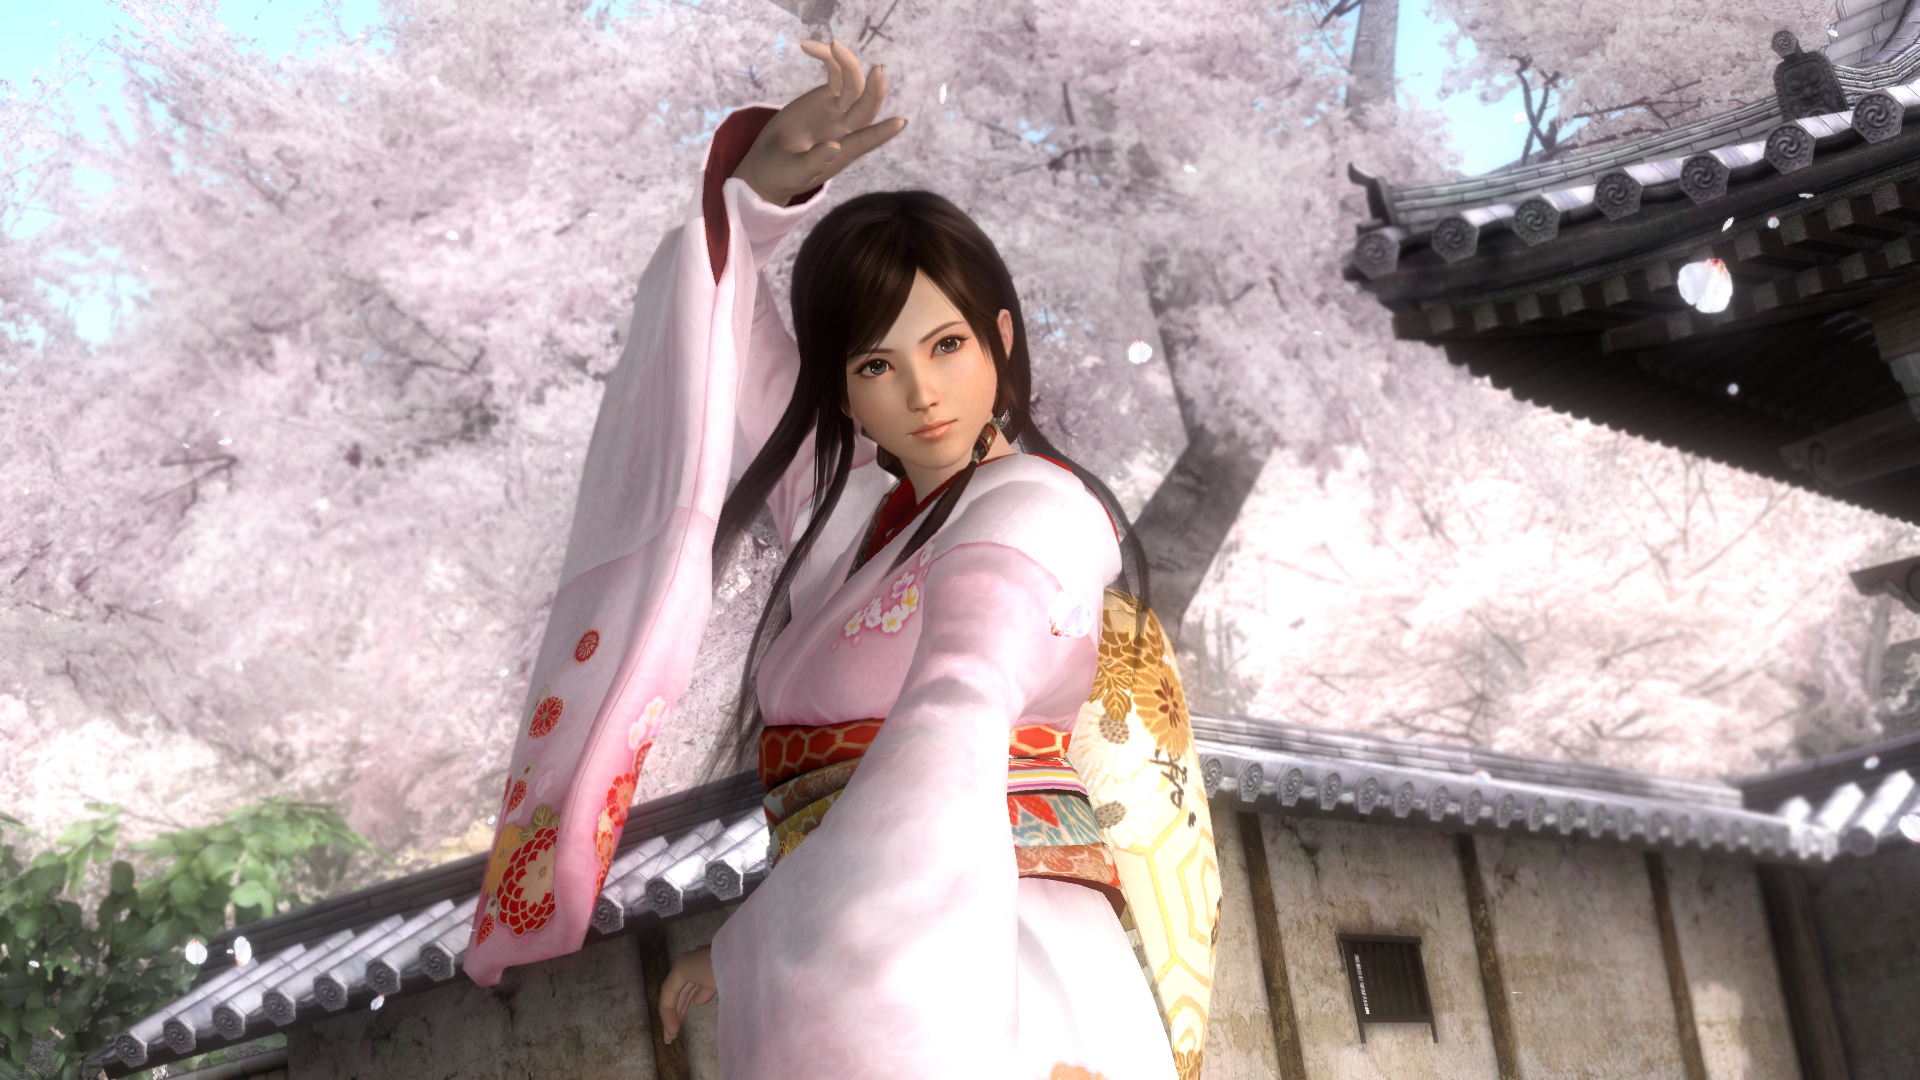 Dead or Alive 5 offers more than just buxom brawlers Giancarlo 1920x1080